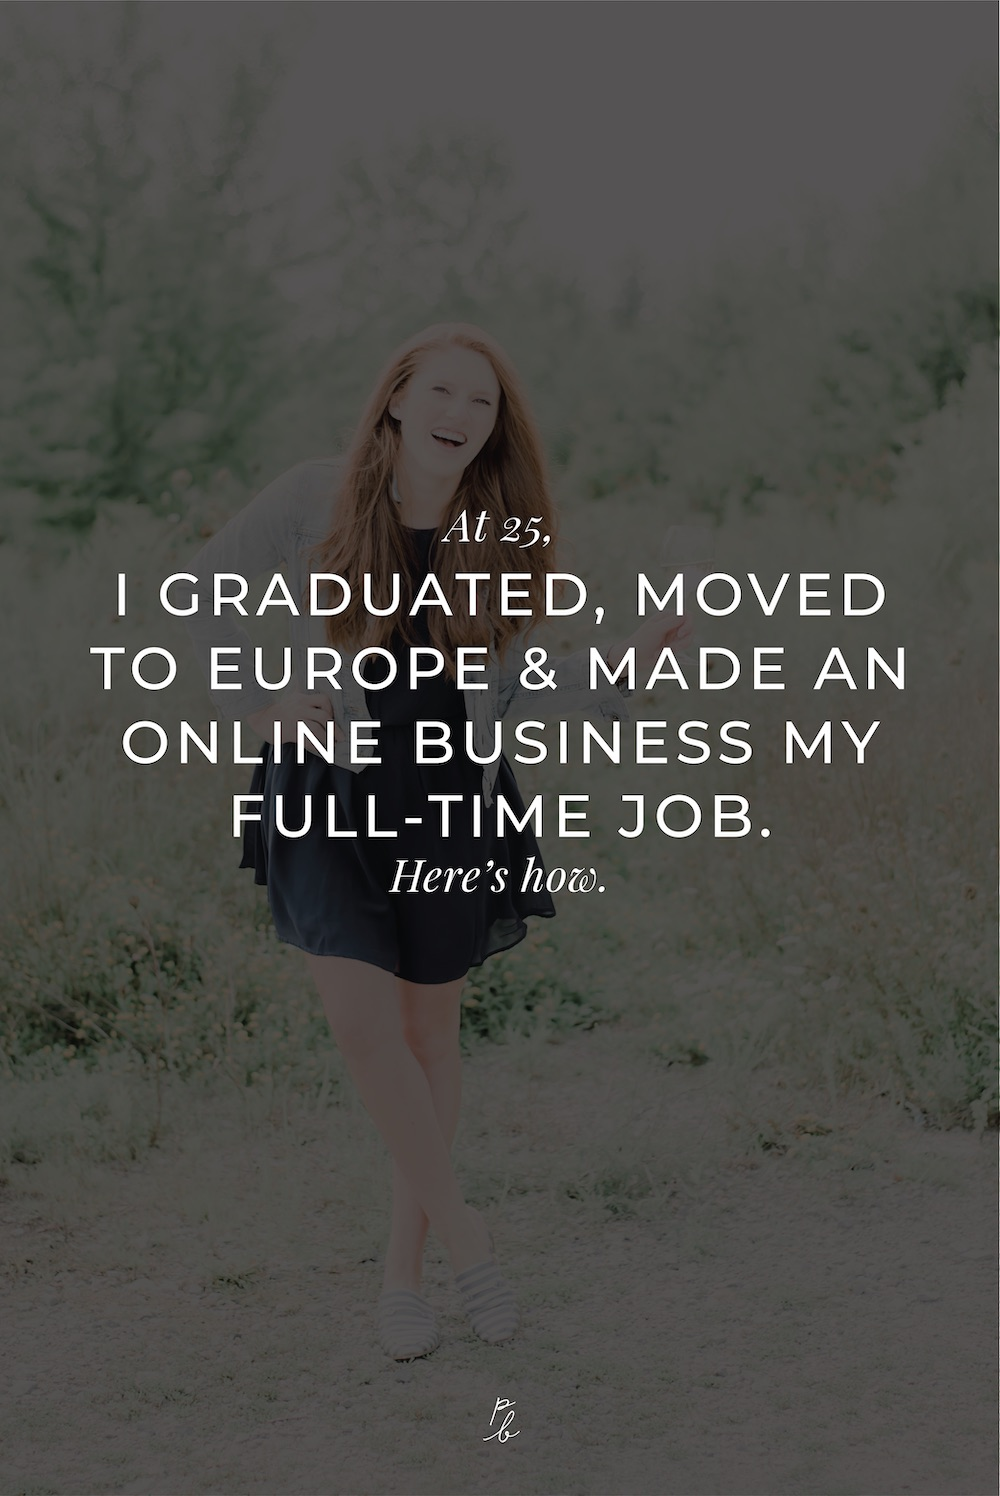 2-At 25, I GRADUATED, MOVED TO EUROPE & MADE AN ONLINE BUSINESS MY FULL-TIME JOB. Here's how.     .jpg